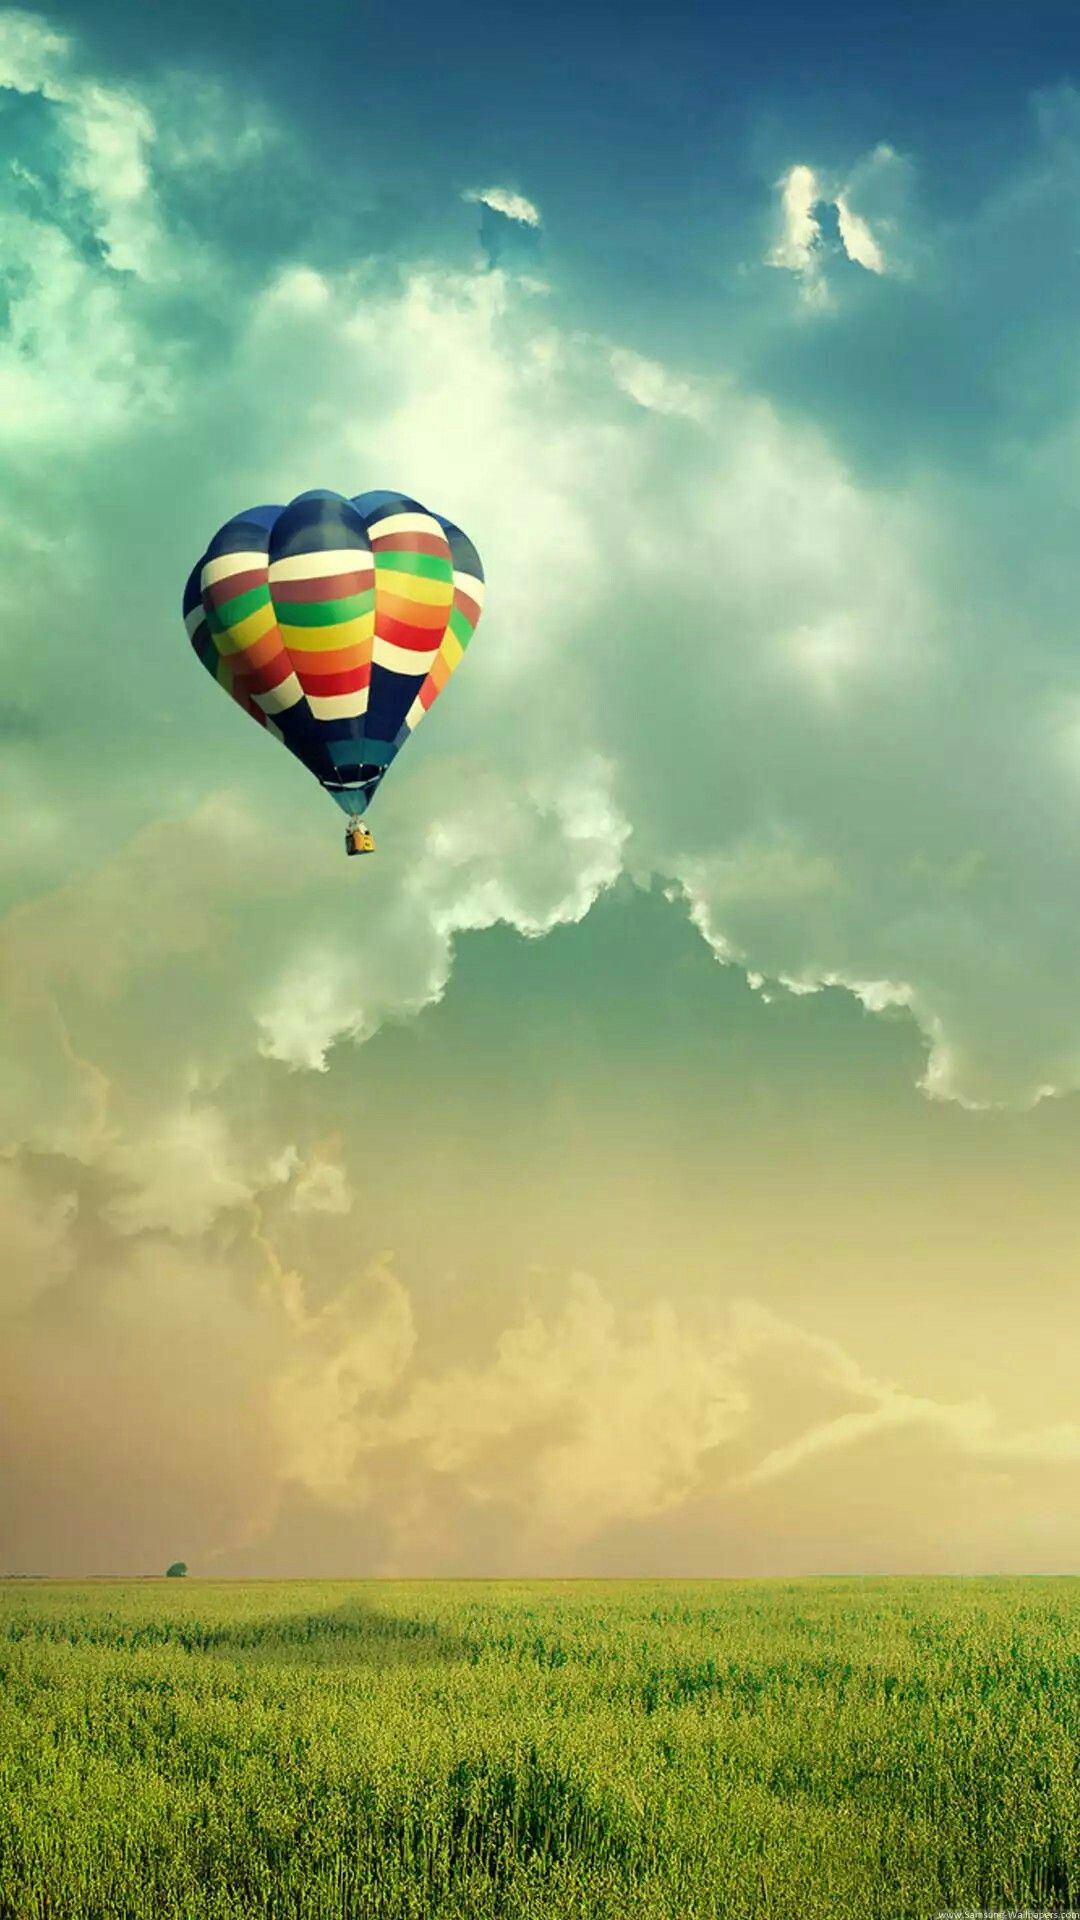 Hot Air Balloon Wallpaper AutumnFall Plants and Trees